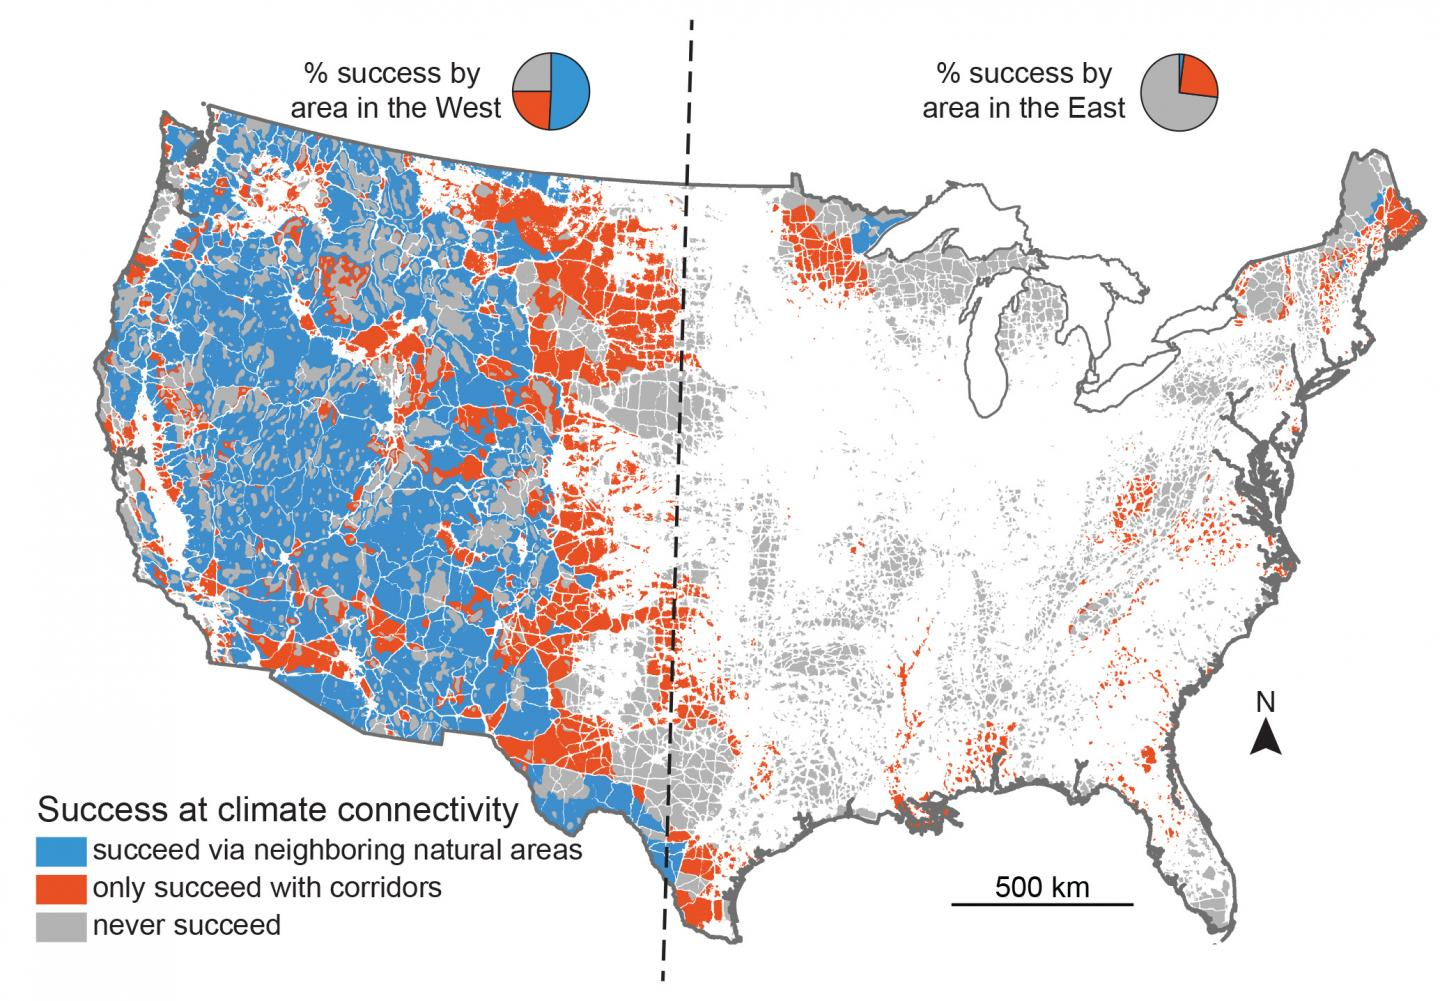 """Climate connectivity corridors"" that help plants & animals for plants and animals to escape climate change"